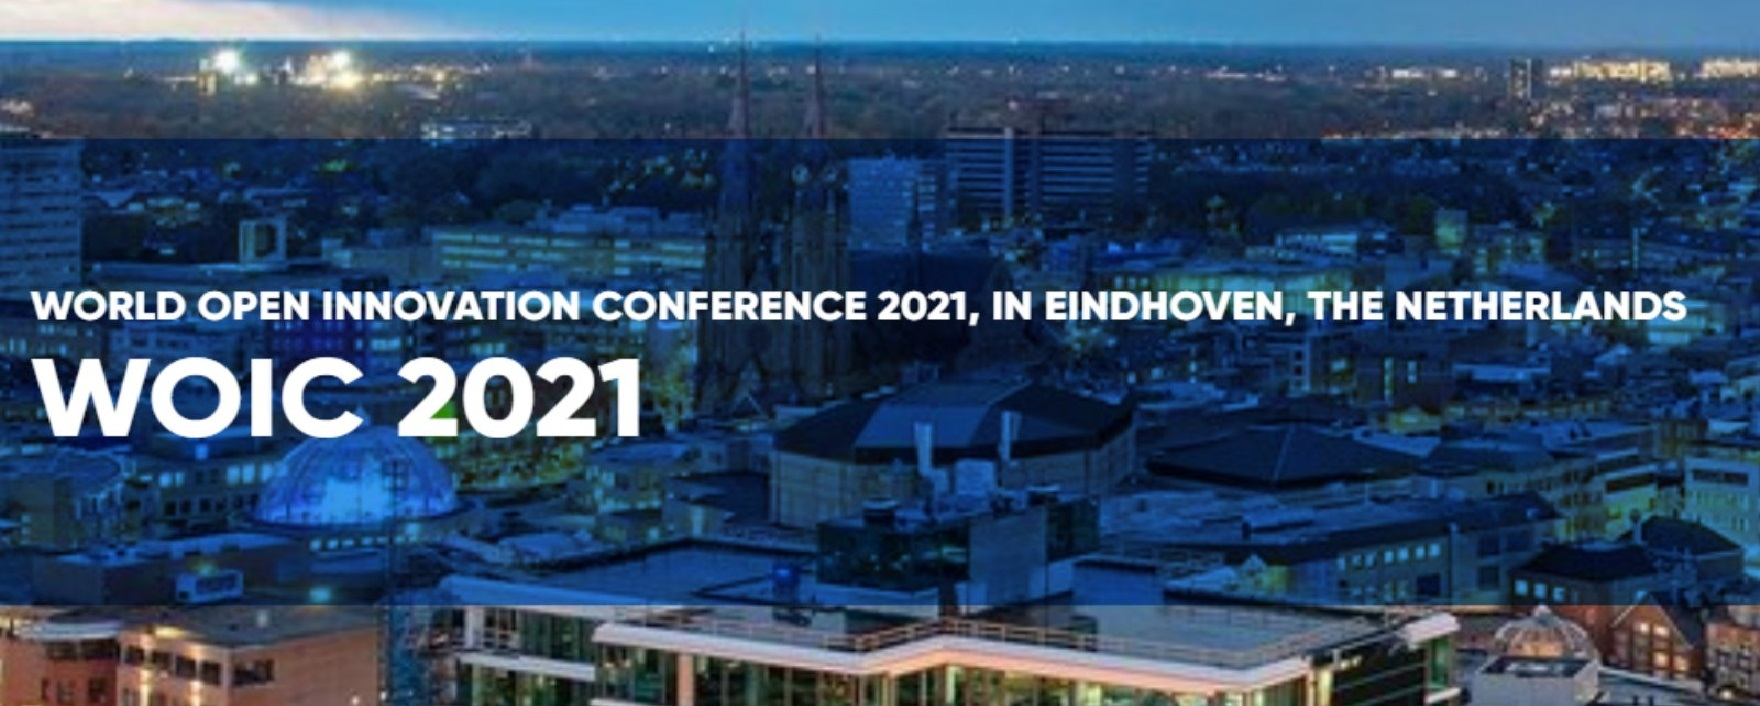 8th Annual World Open Innovation Conference (WOIC 2021)